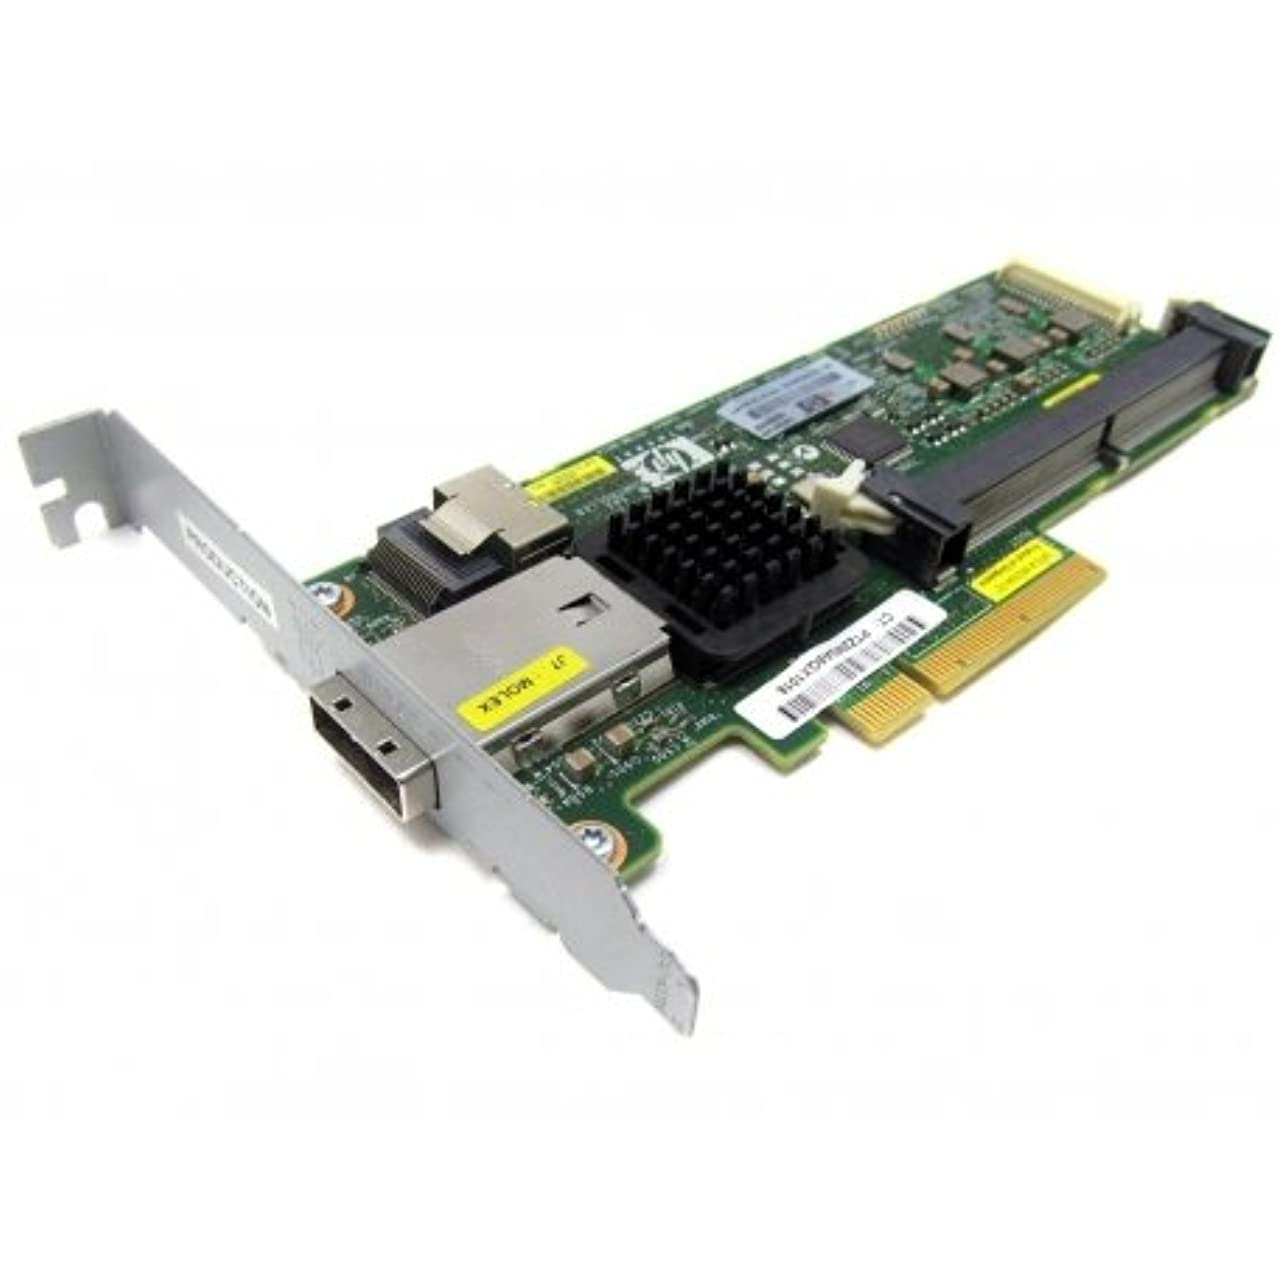 129281-001 Compatible HP Dual Channel SCSI Adapter